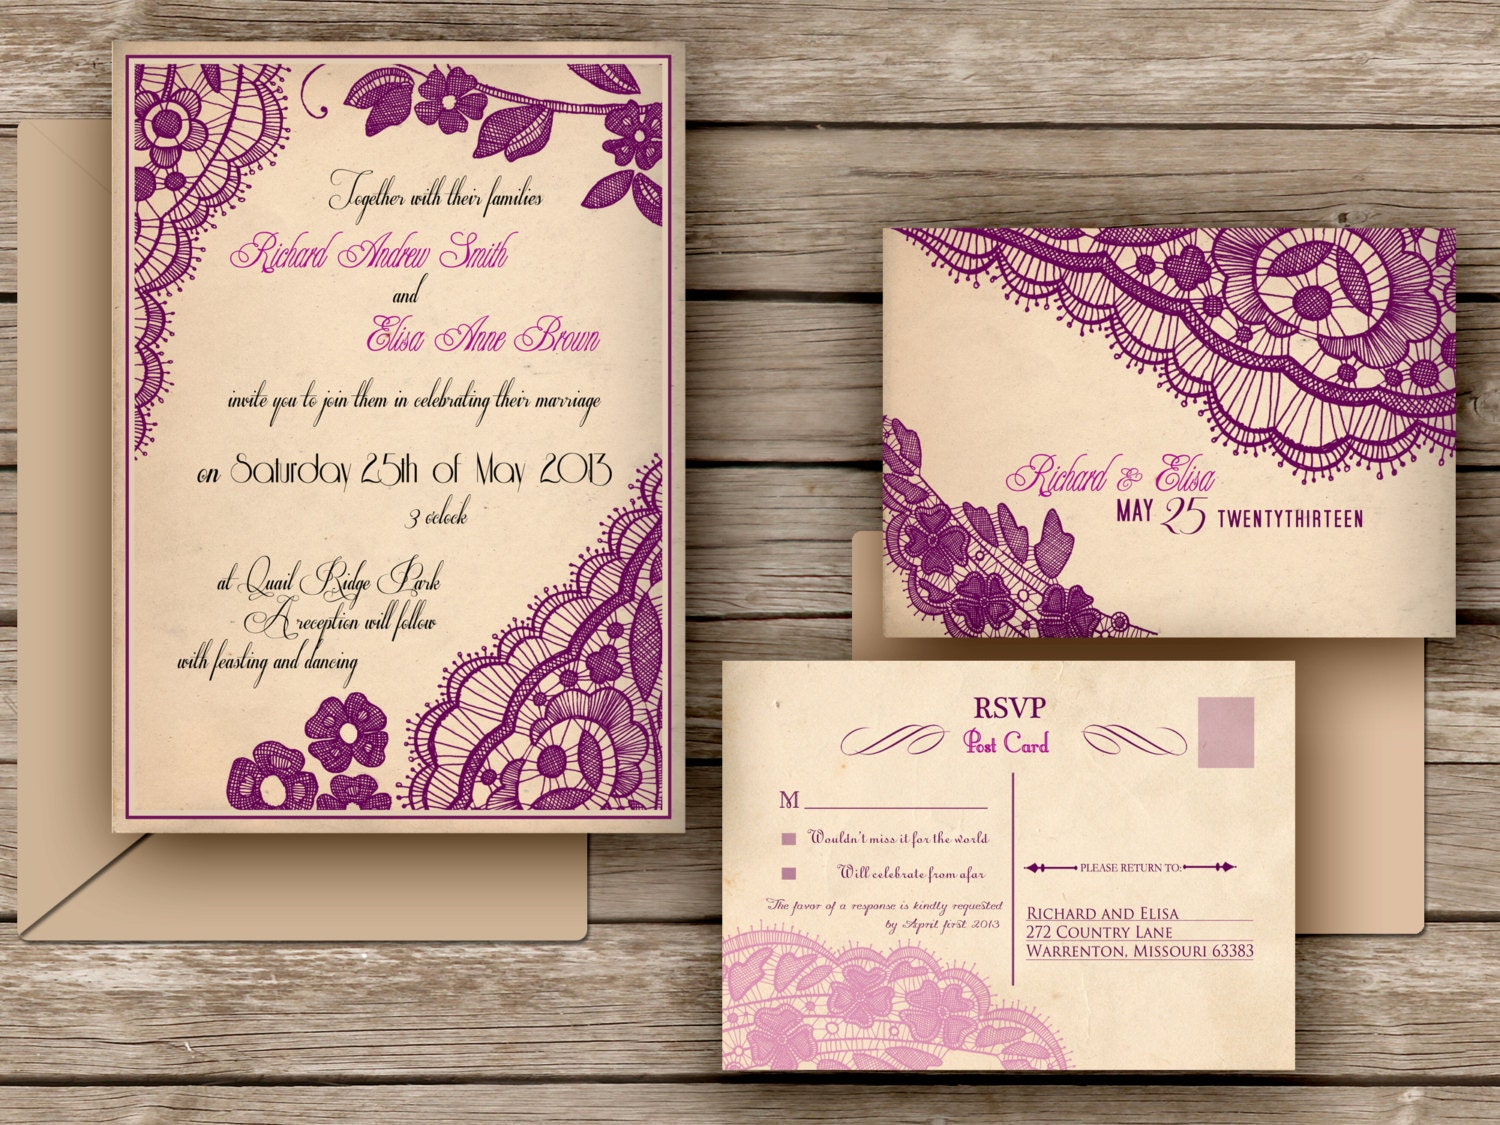 Wedding Invitation Lace: WEDDING INVITATIONS PRINTABLE Lace By DesignedWithAmore On